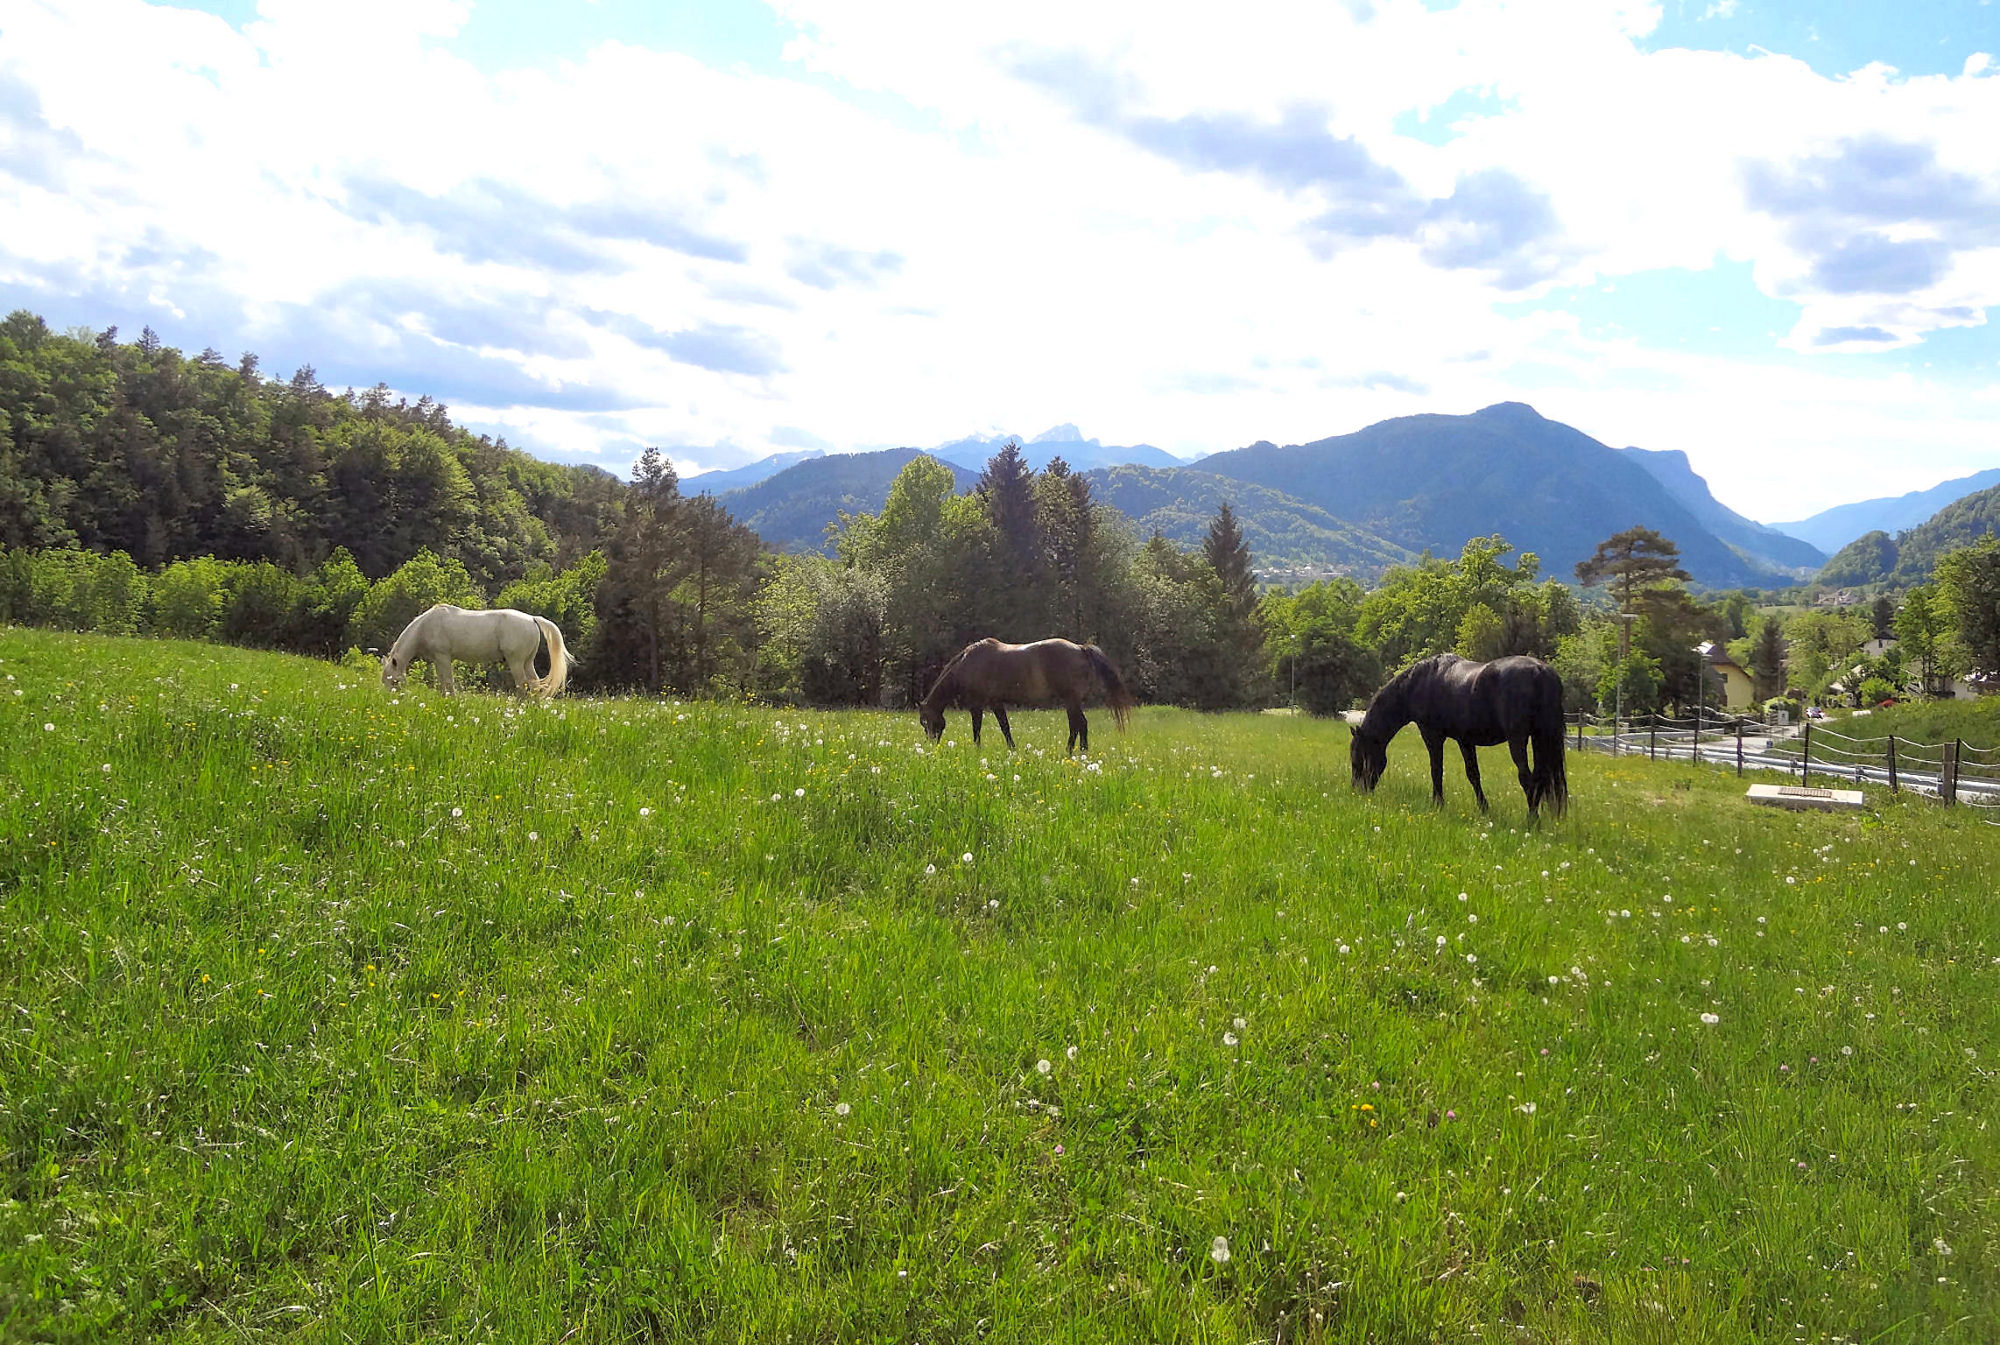 Horses on a pasture in the green Zavrsnica valley in Slovenia